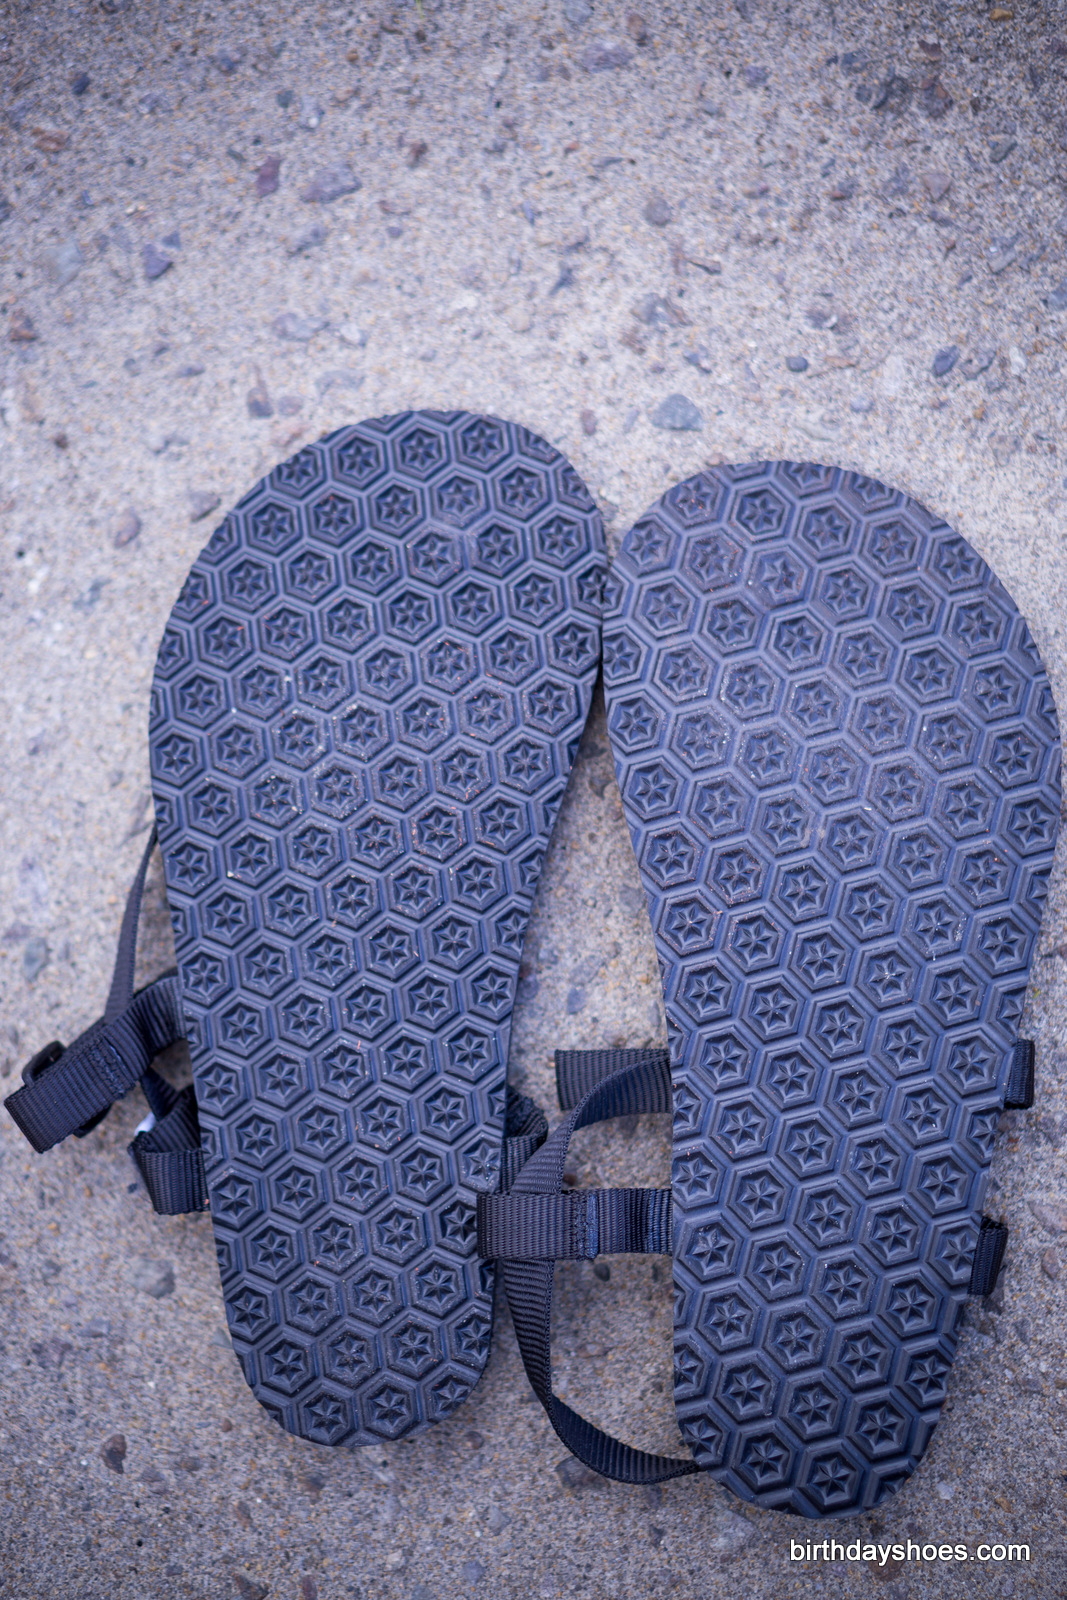 """The 4mm """"Star"""" sole. Note the lack of any exposed anchoring points on the bottom of the sole"""